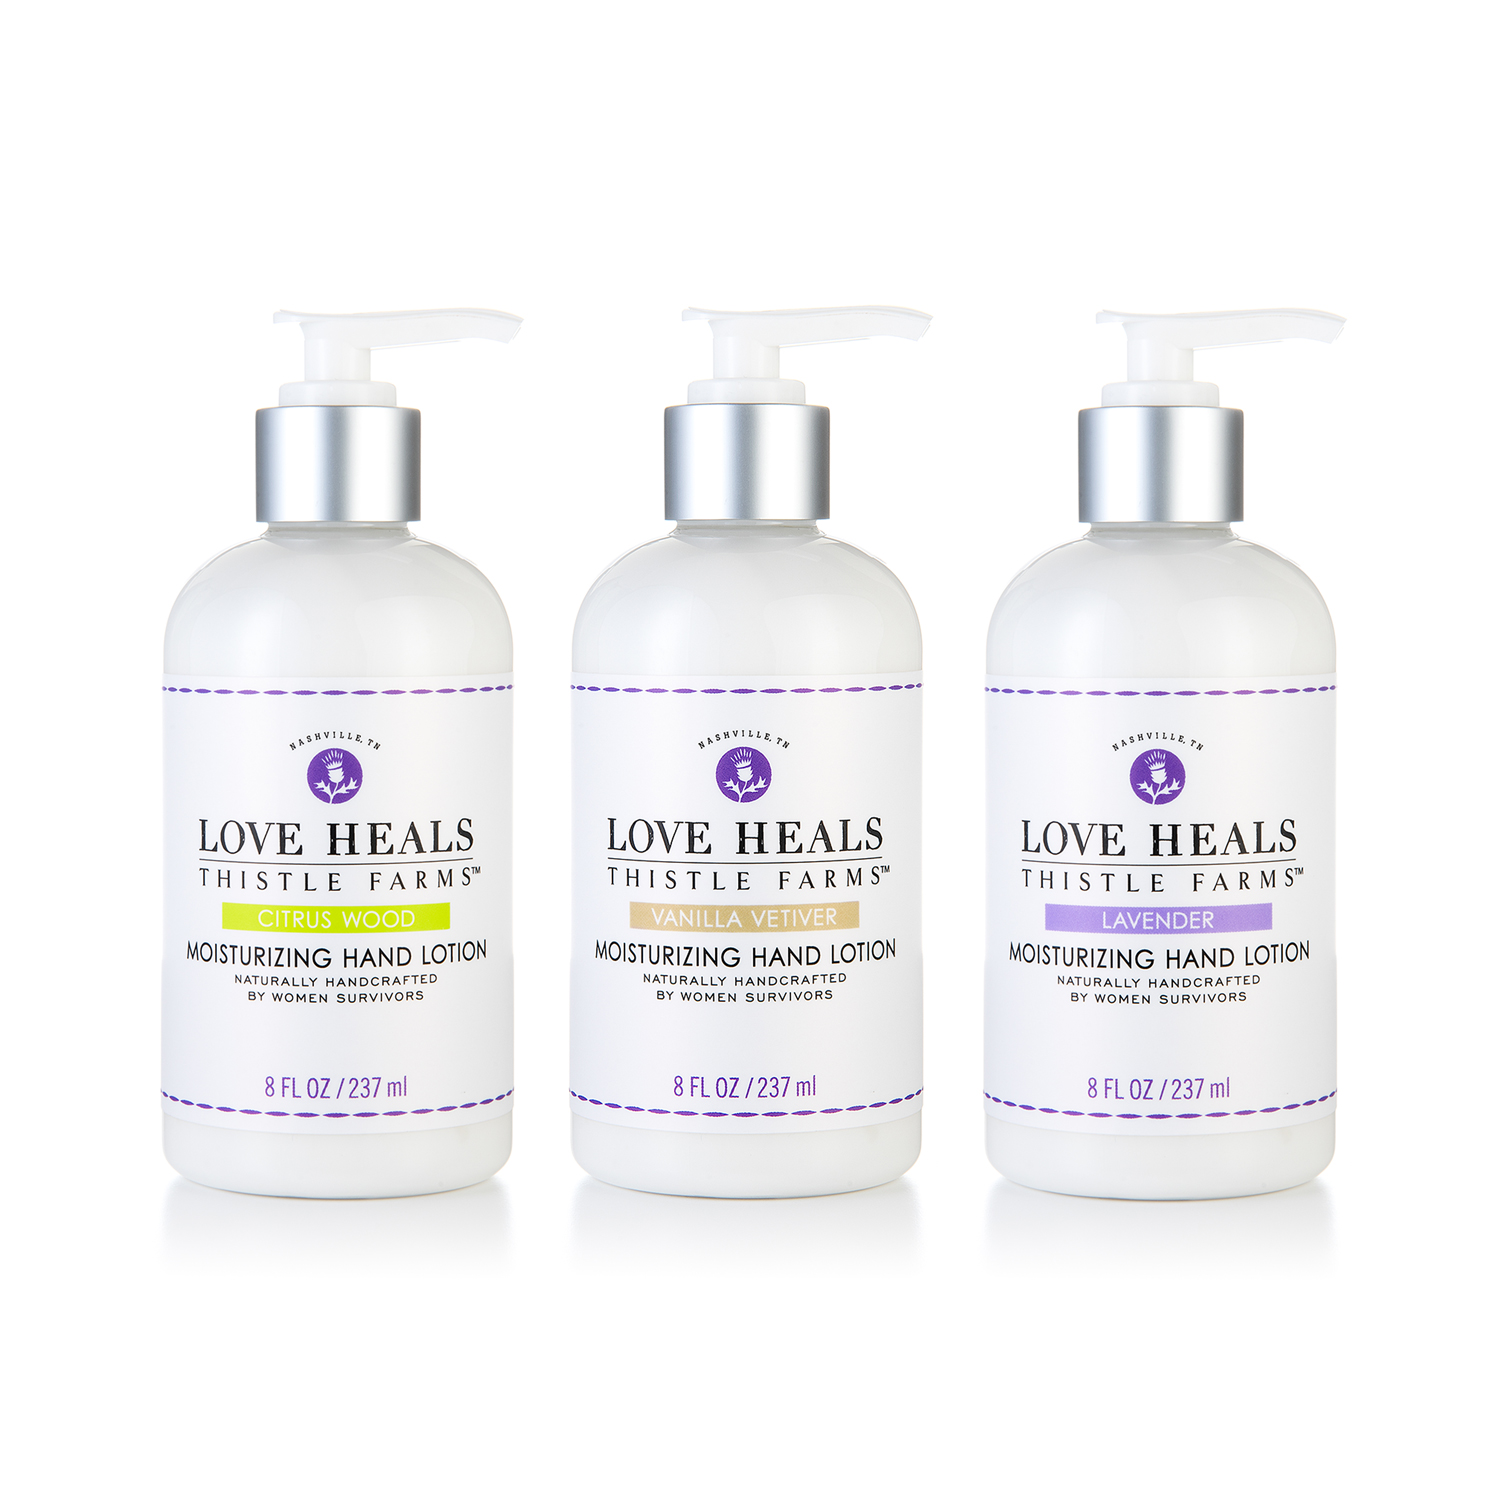 PACKAGE DESIGN - Thistle Farms | hand lotion bottles and labels - ©UnParalleled, LLC dba UP-Ideas / Roger Sawhill / Mark Braught - Atlanta, Georgia | Lawrenceville, Georgia | Commerce, Georgia